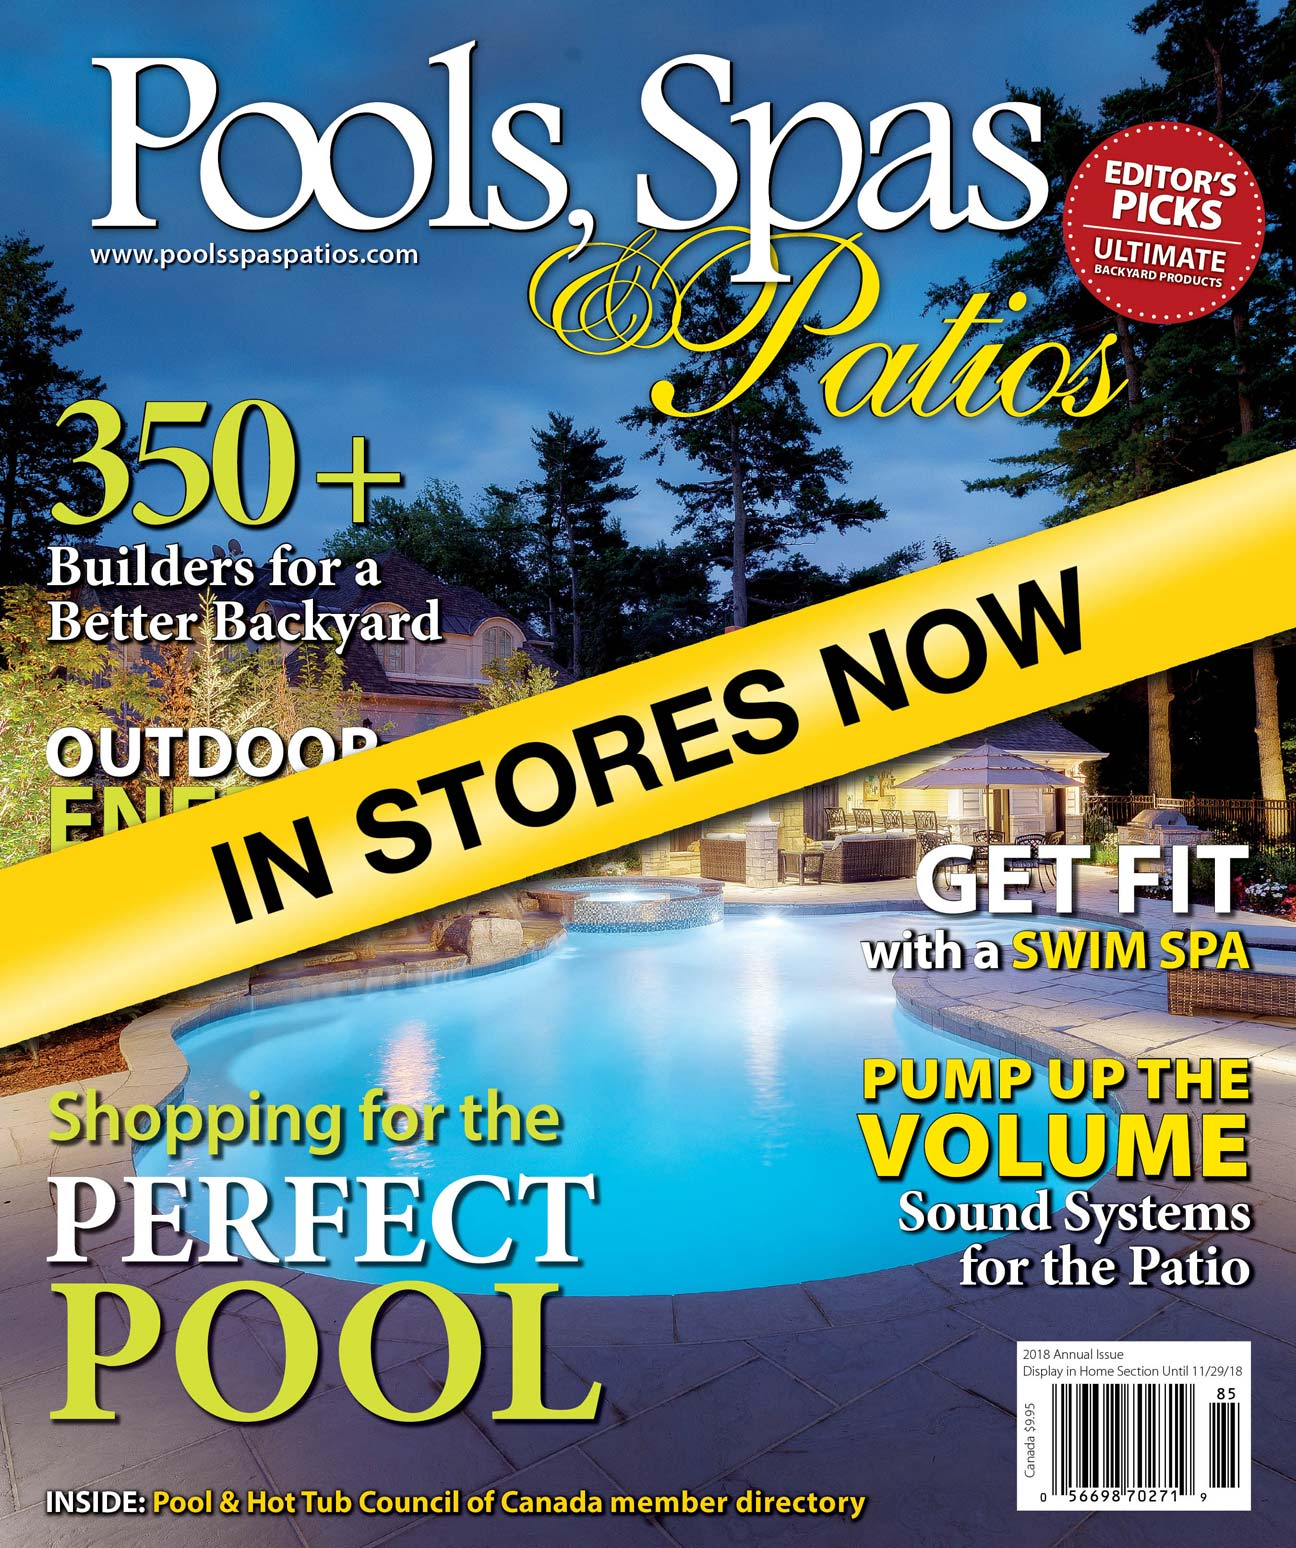 Look for your copy of Pools, Spas & Patios on newsstands today.